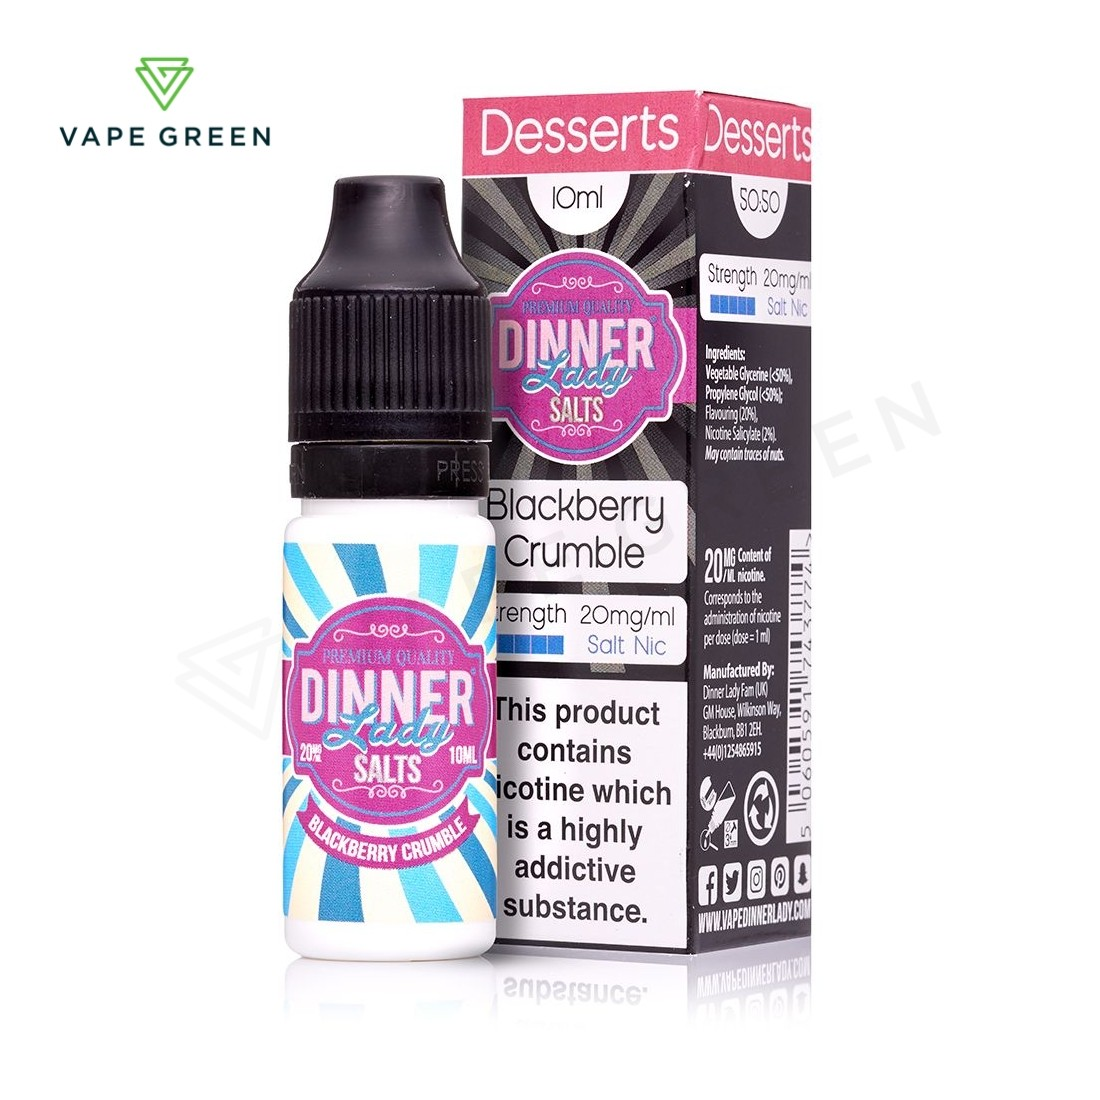 Blackberry Crumble eLiquid by Dinner Lady Salts